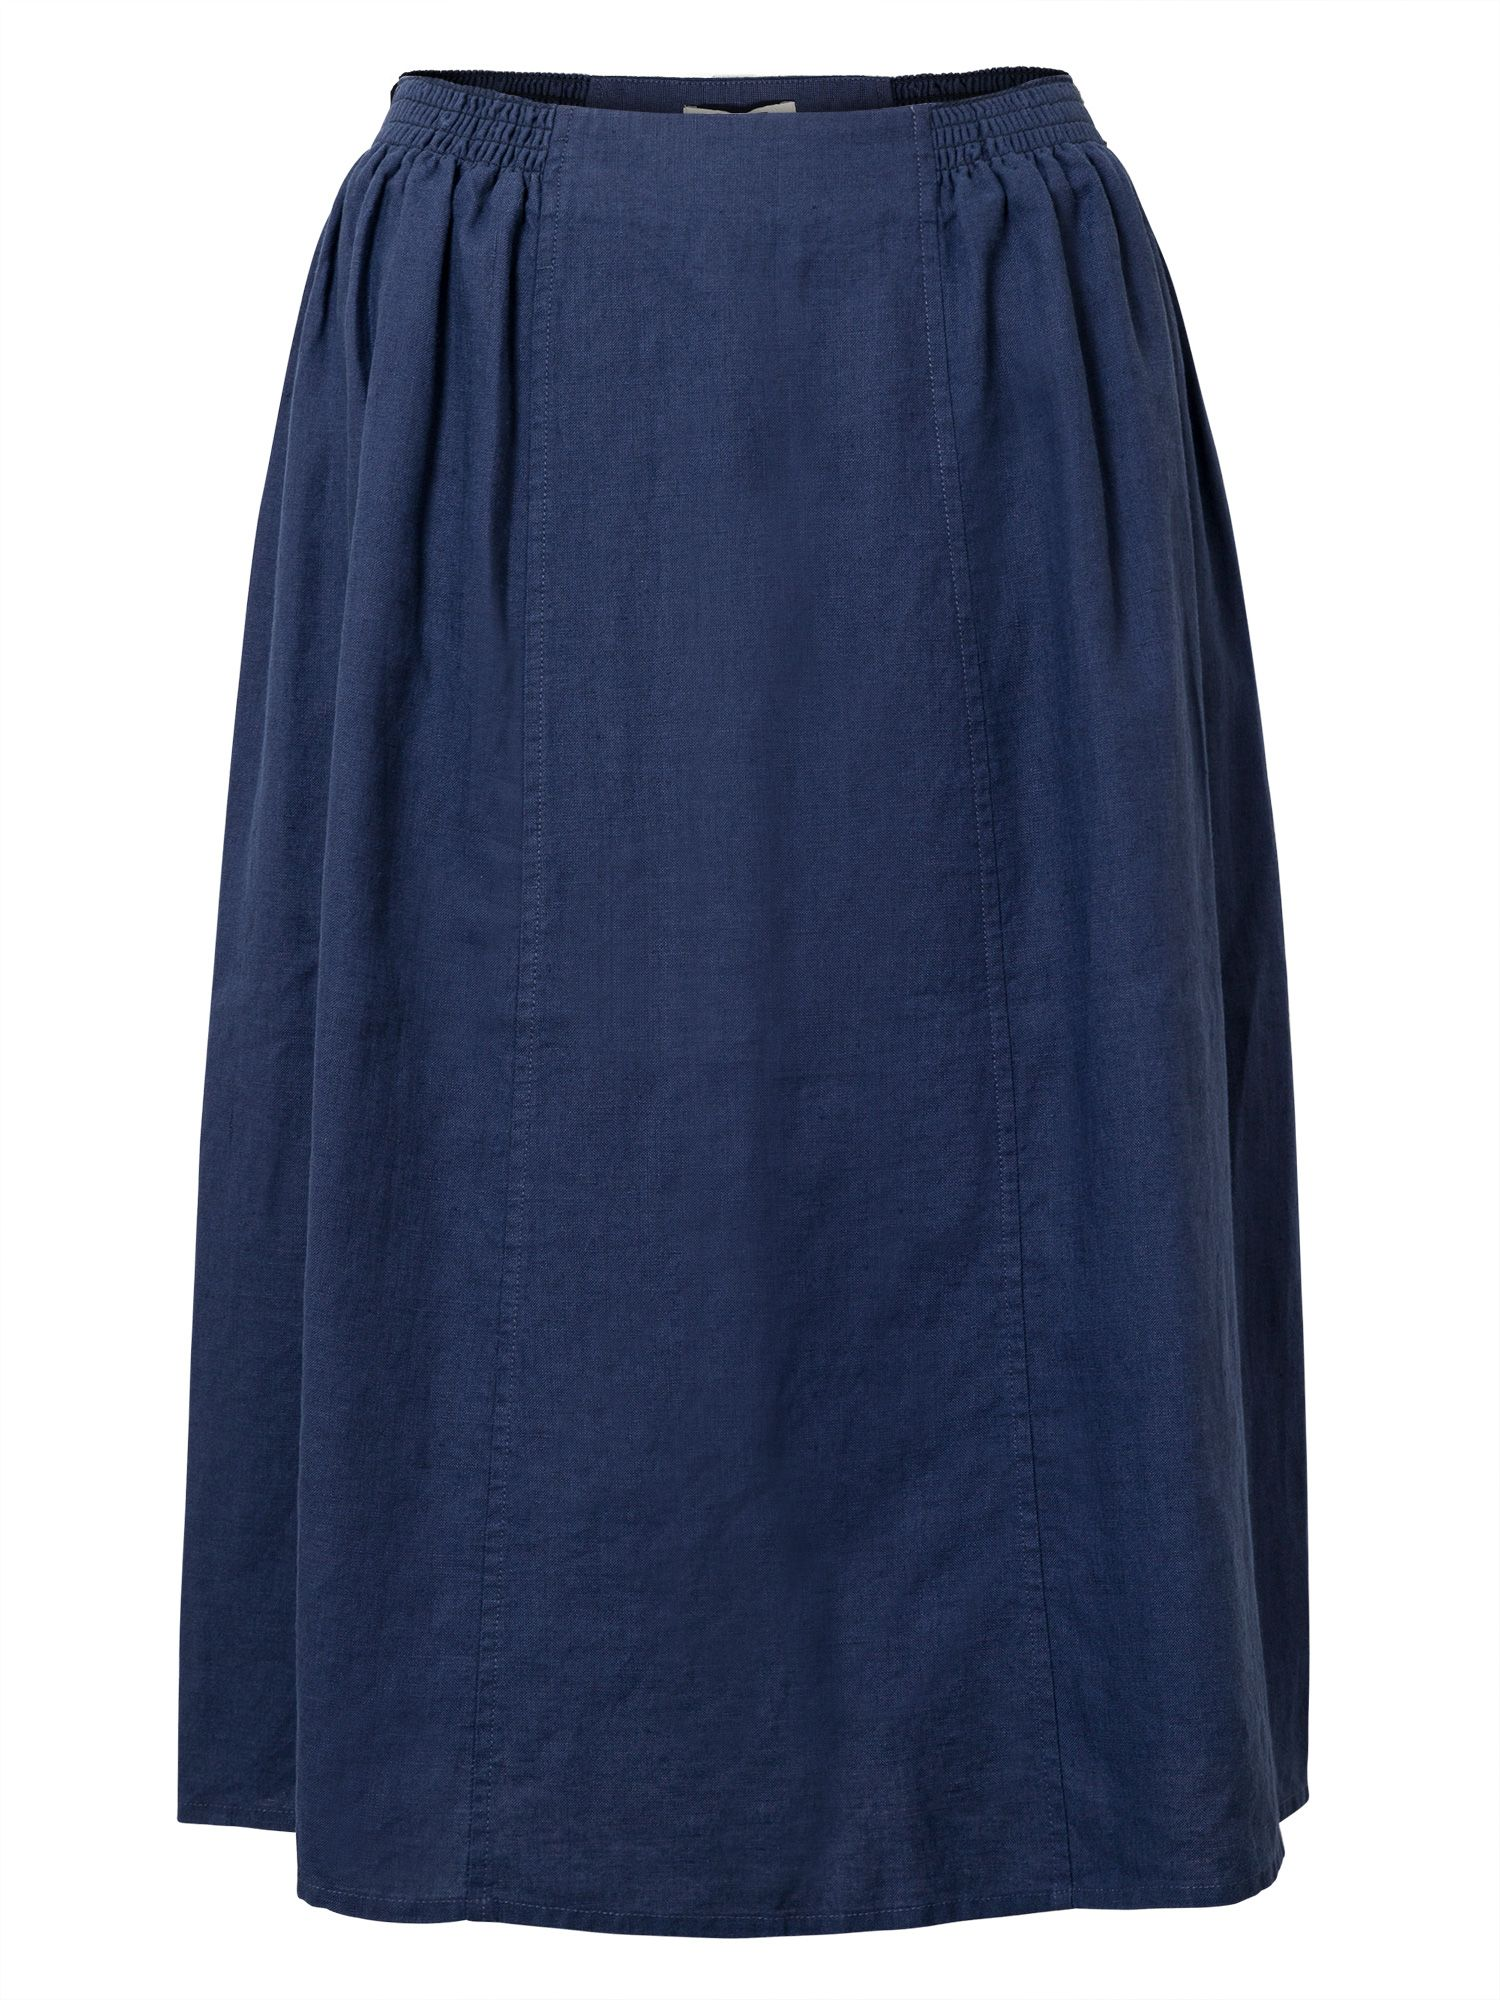 East Linen Elastic Detail Skirt, Blue